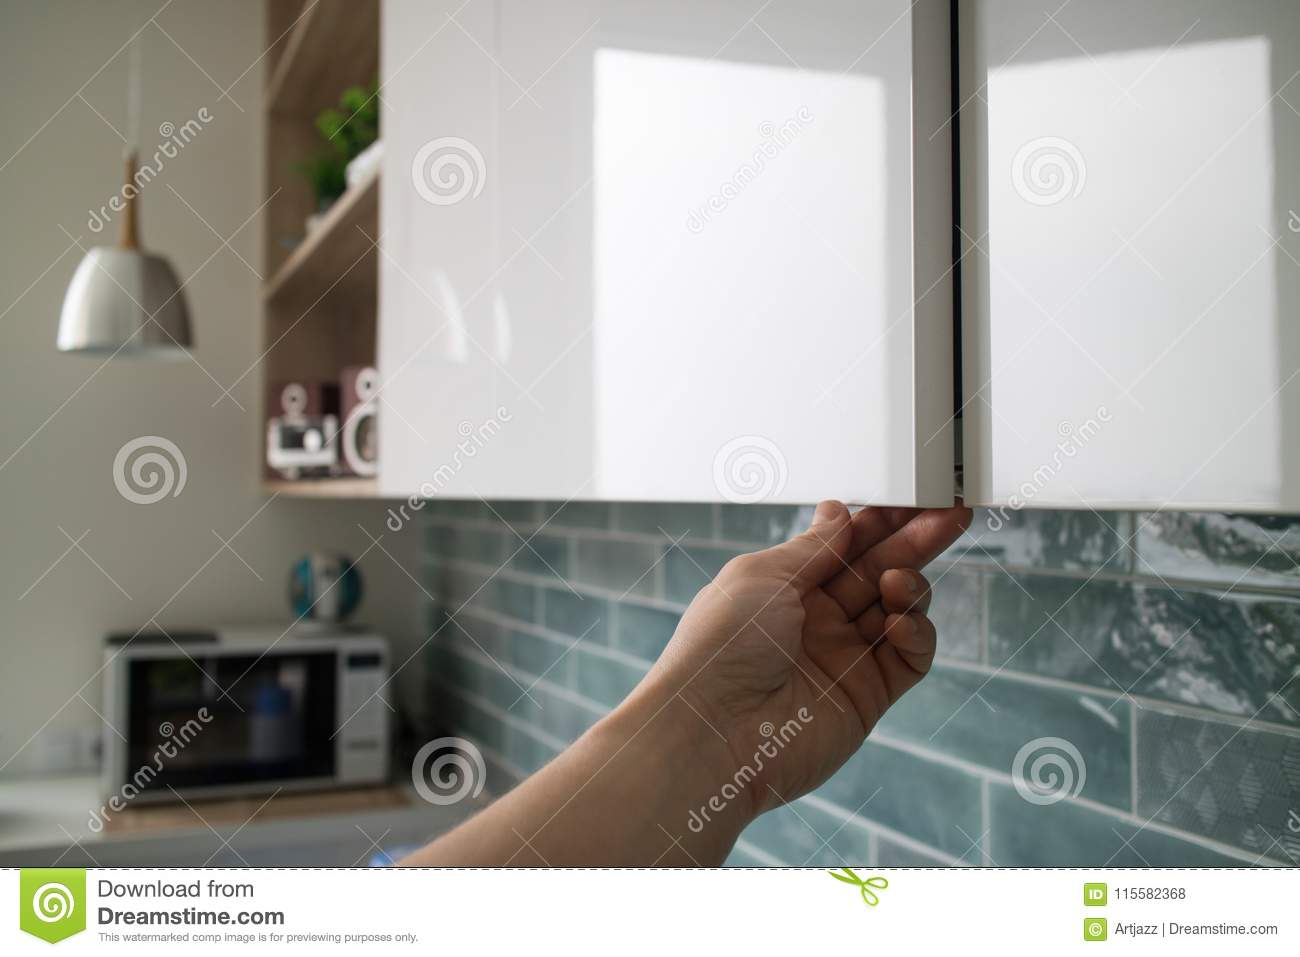 Kitchen Cabinet With Doors Without Handles The Man S Hand Shows How